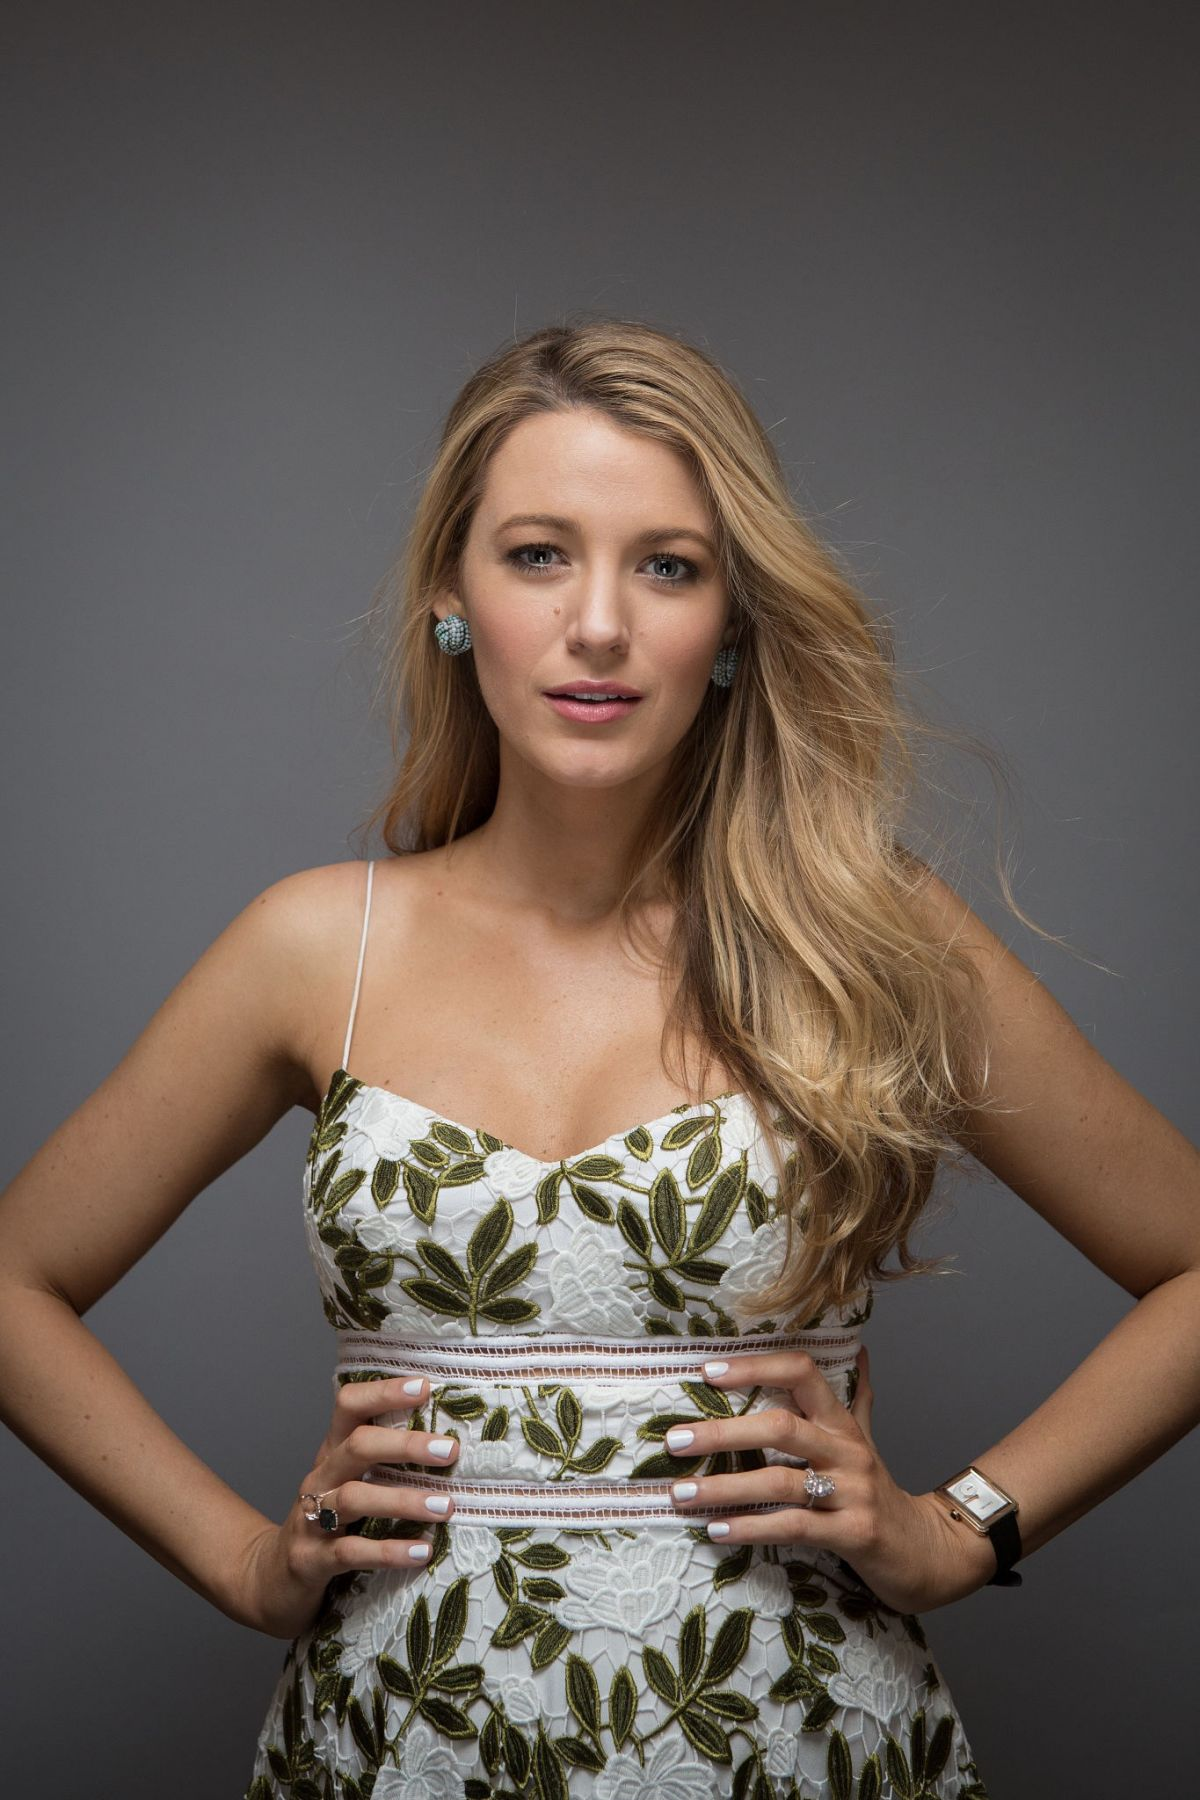 Blake Lively At Photoshoot for the Film Cafe Society ...